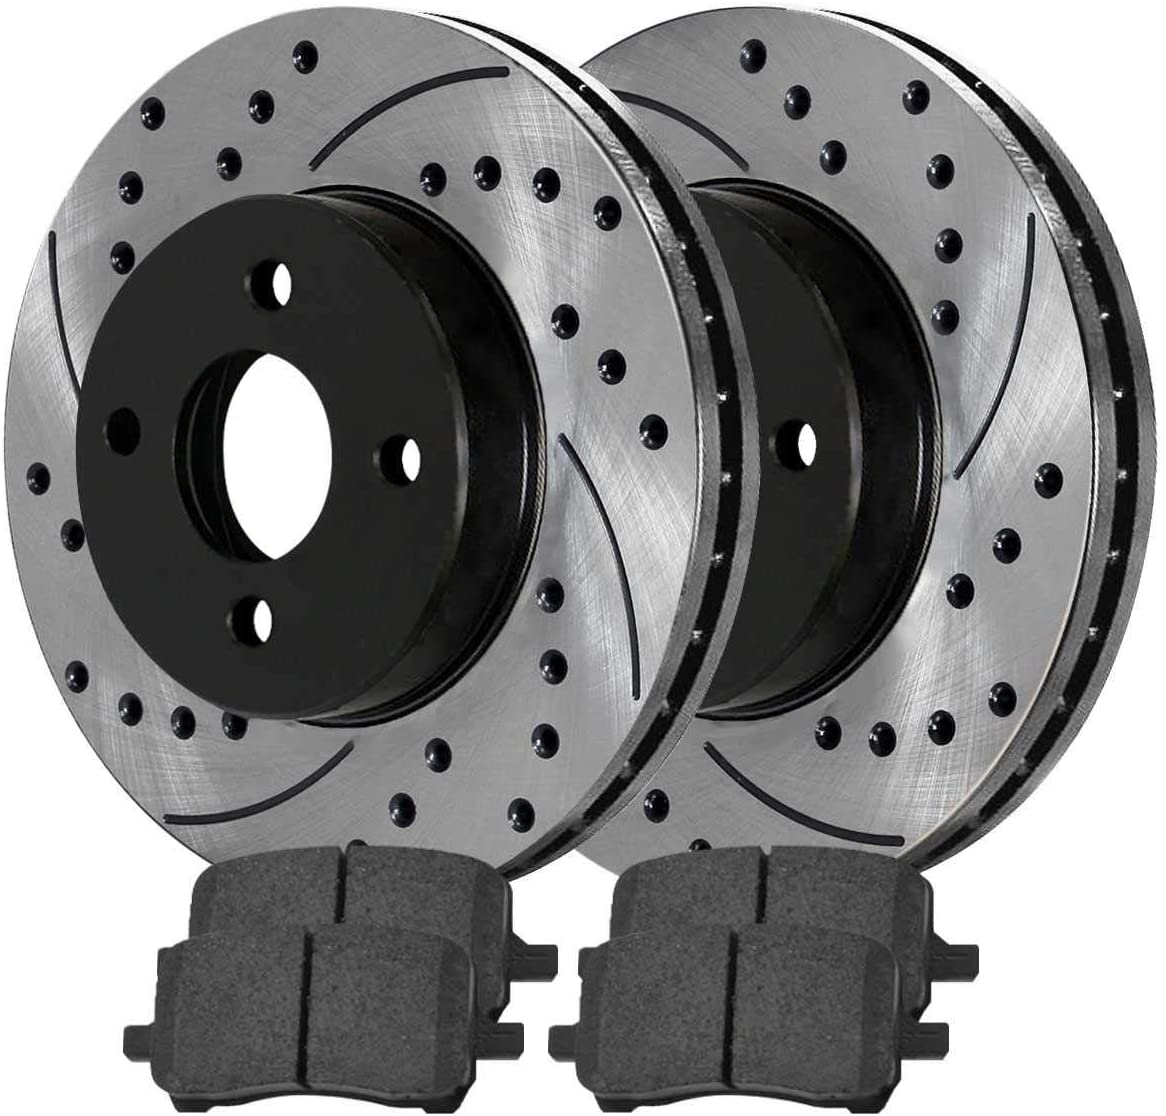 Auto Shack SMKPR6508565085956 2 Front Performance Drilled and Slotted Brake Rotors and Semi Metallic Brake Pads Set